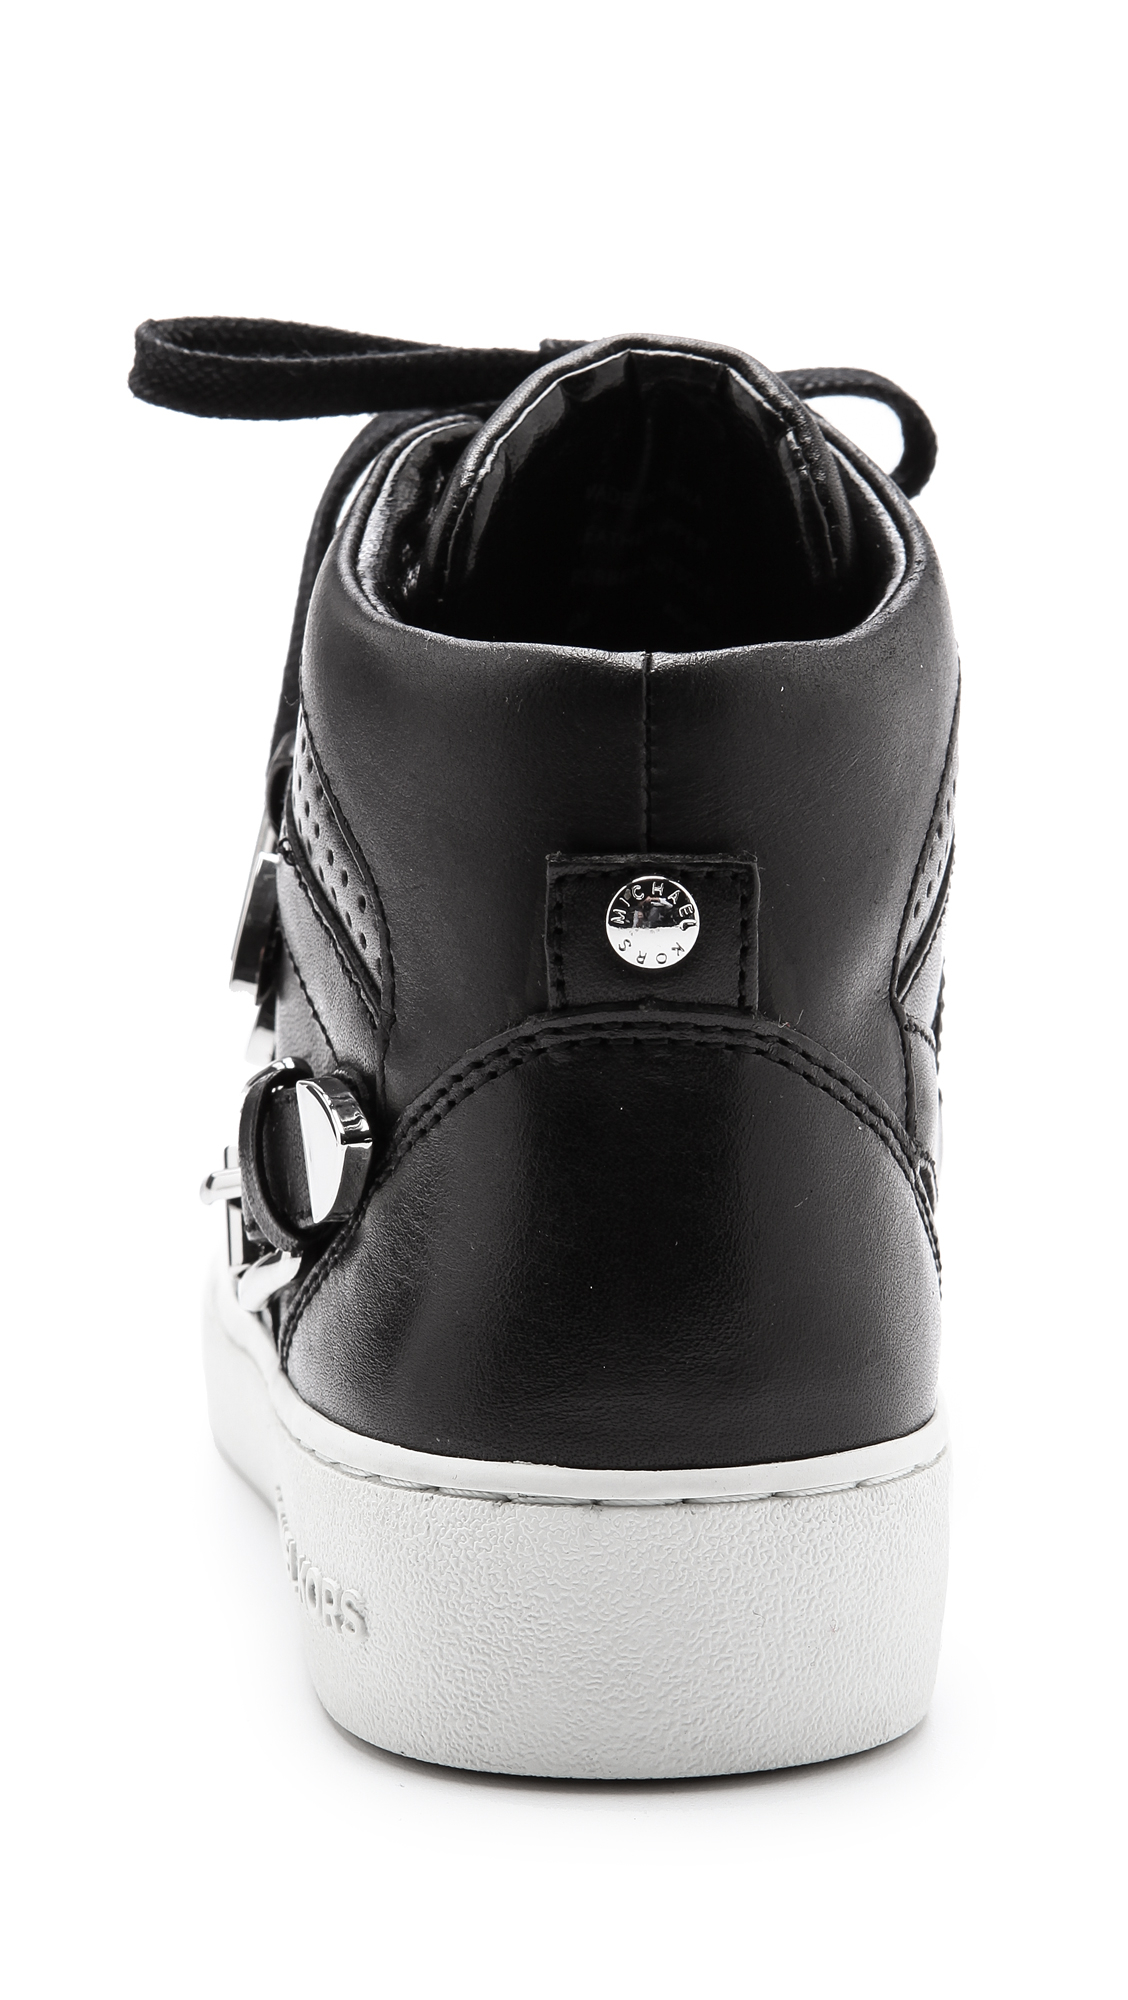 MICHAEL Michael Kors Robin High Top Sneakers Black - Lyst